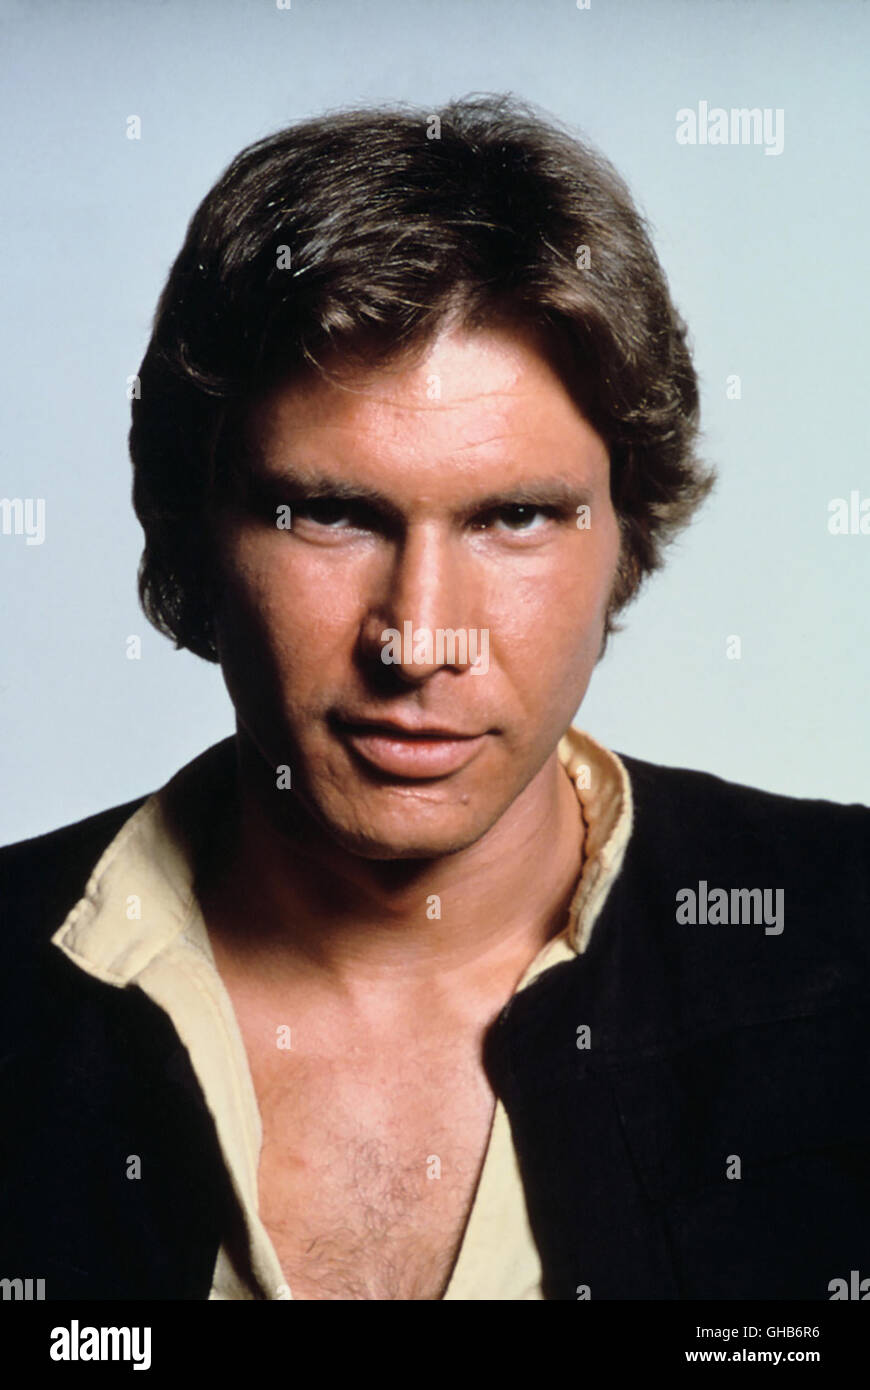 Han Solo High Resolution Stock Photography And Images Alamy